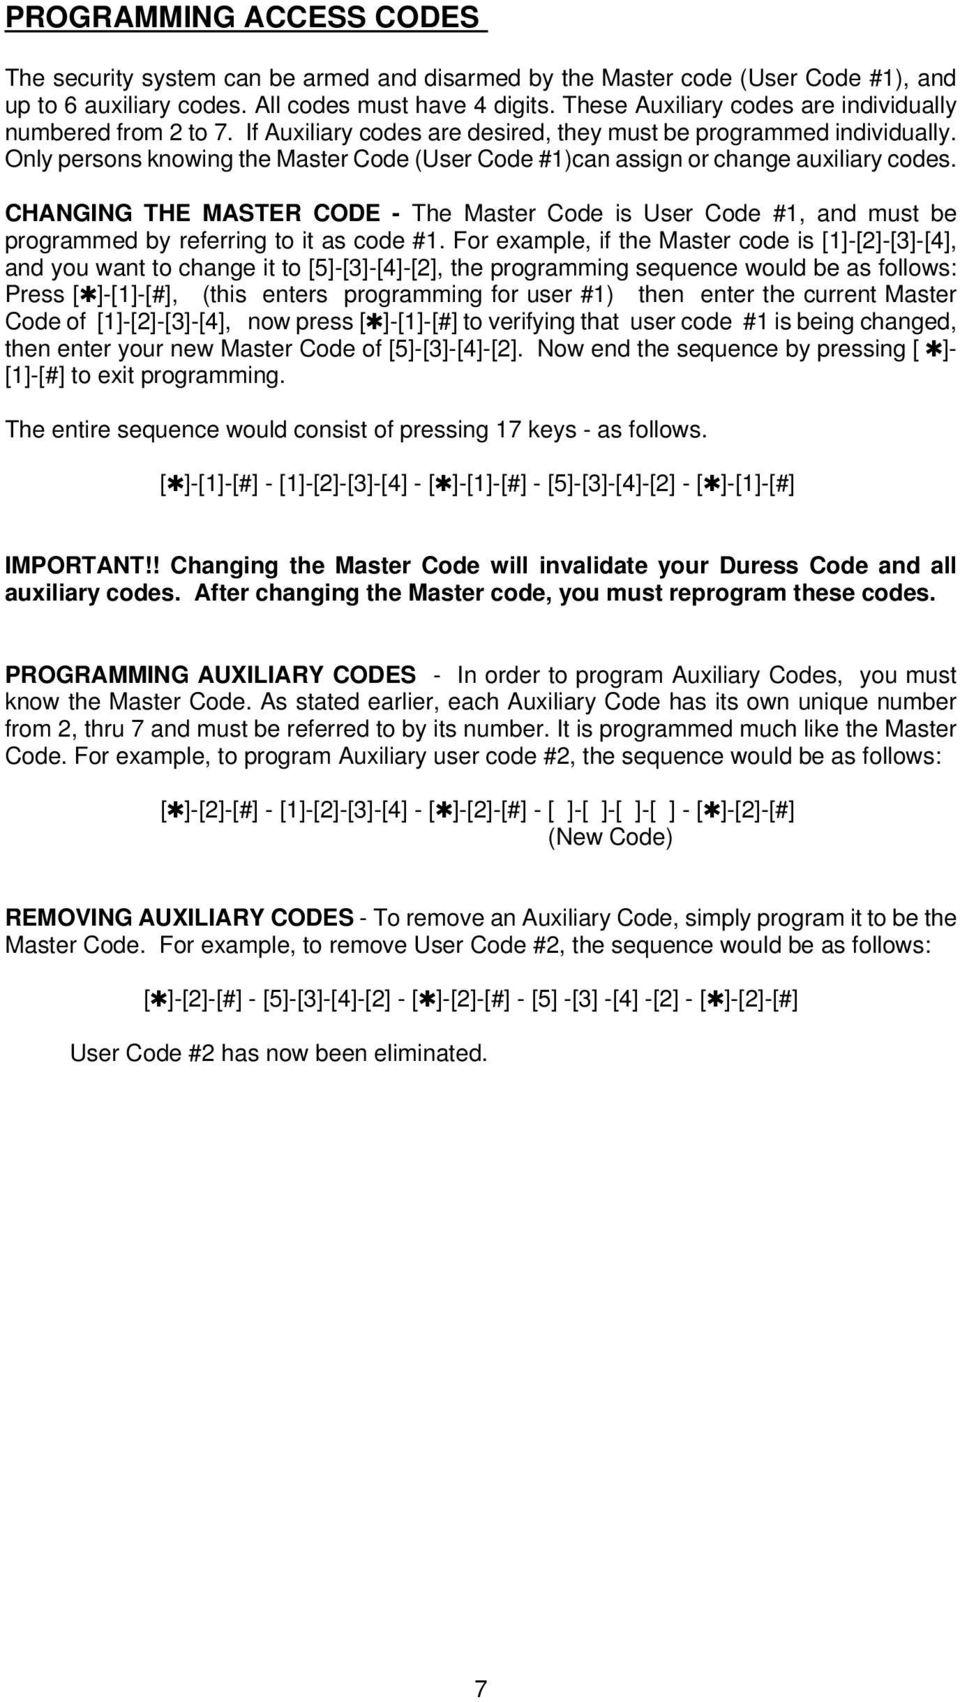 Only persons knowing the Master Code (User Code #1)can assign or change auxiliary codes.